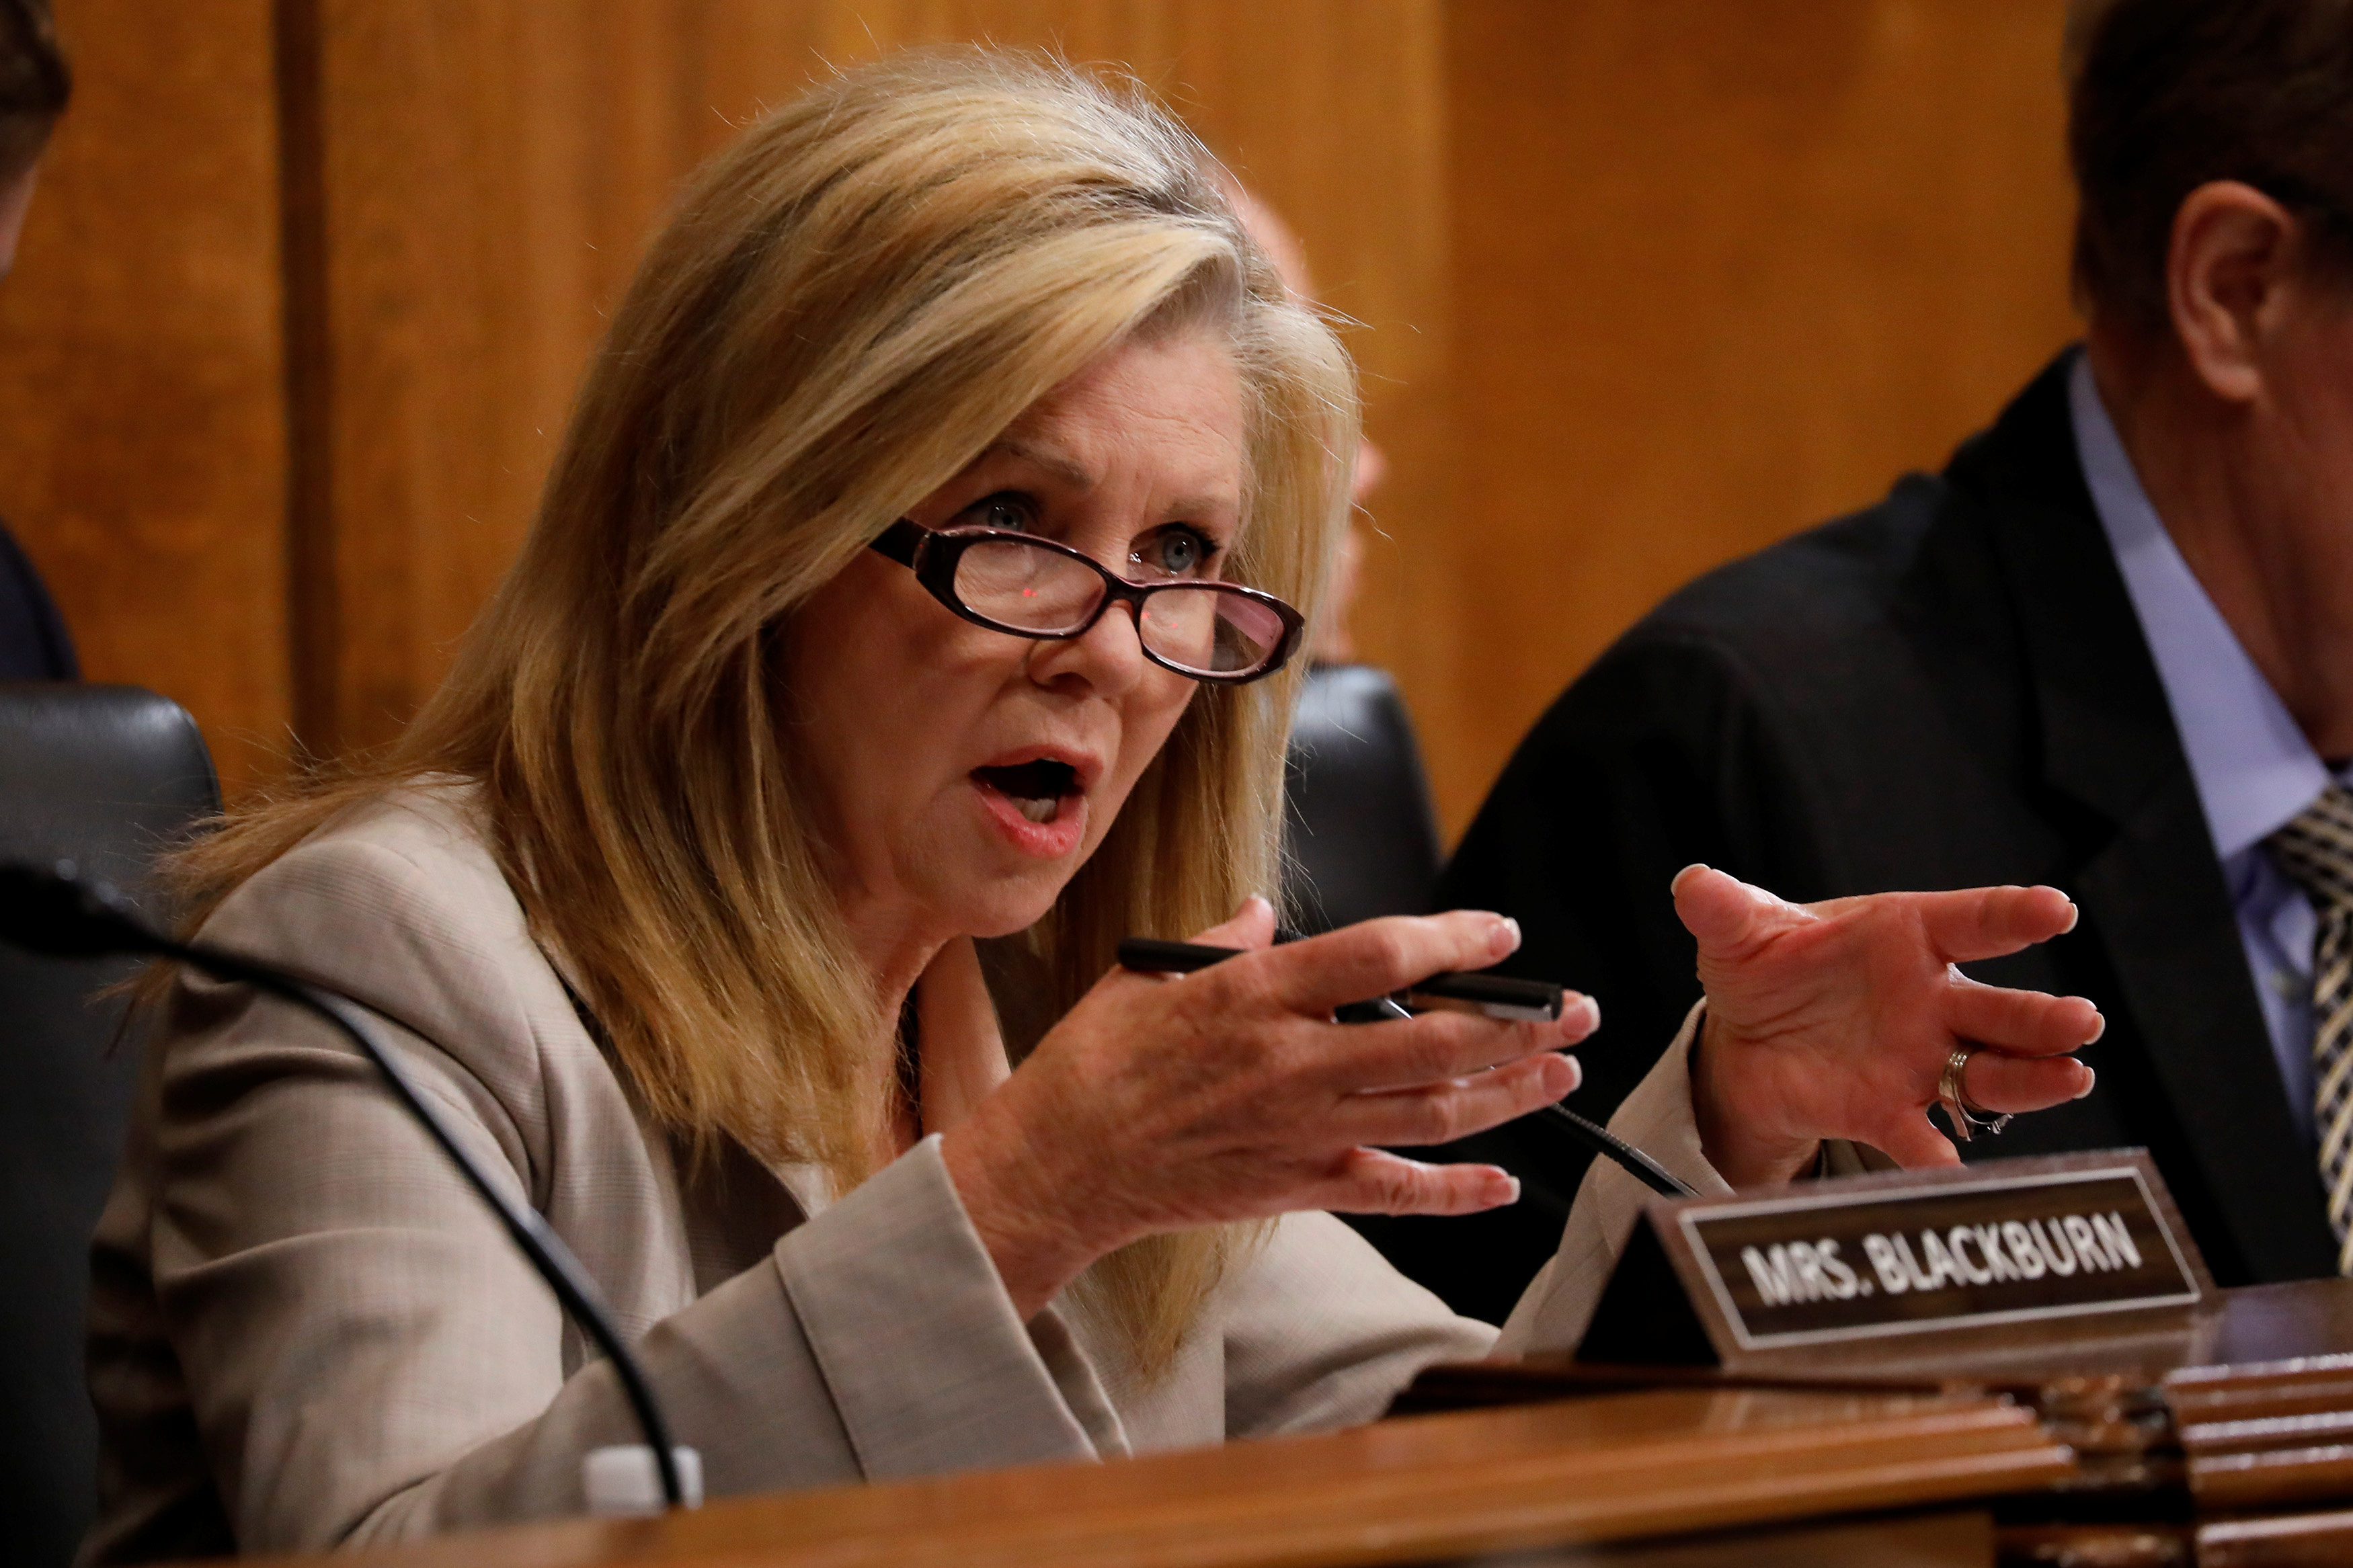 """Sen. Marsha Blackburn (R-TN) asks a question as U.S. Attorney General William Barr testifies before a Senate Judiciary Committee hearing entitled """"The Justice Department's Investigation of Russian Interference with the 2016 Presidential Election"""" on Capitol Hill in Washington, D.C., U.S., May 1, 2019. REUTERS/Aaron P. Bernstein"""